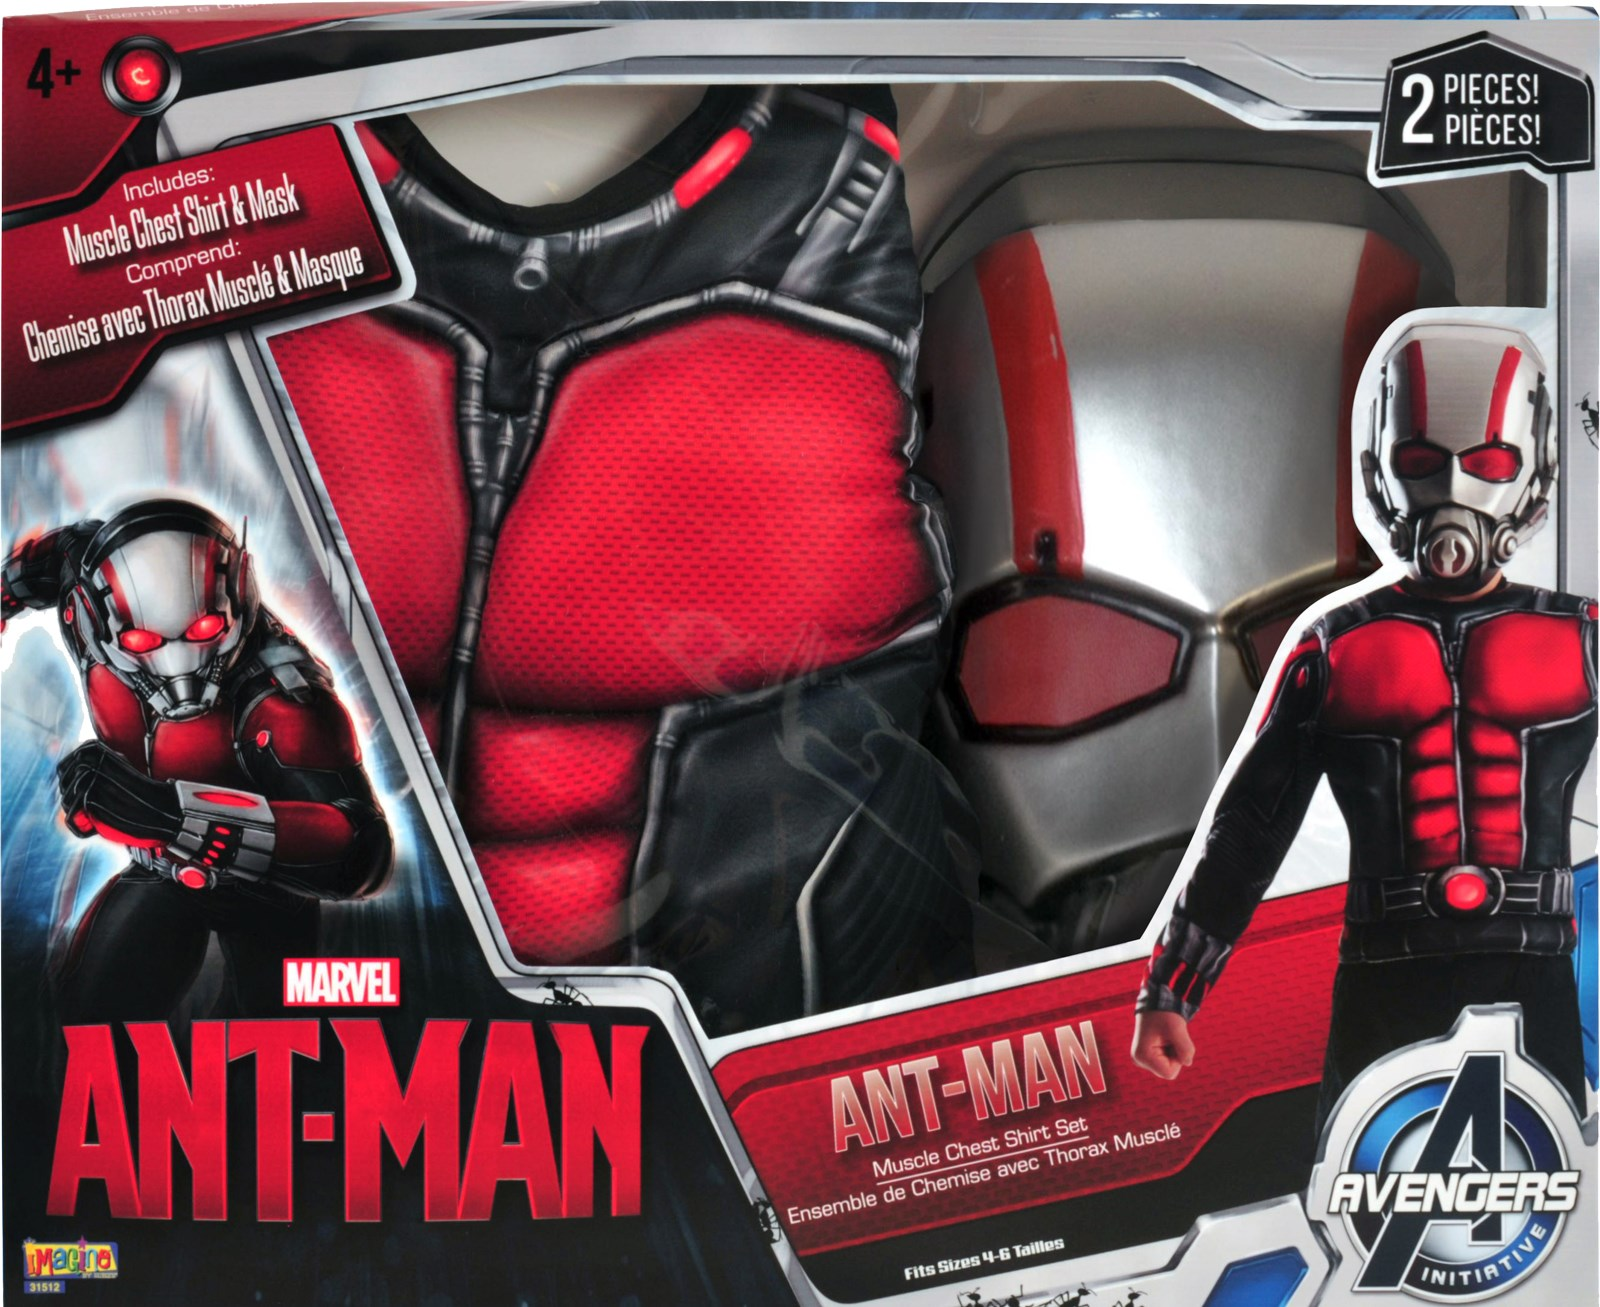 House decorations for halloween - Ant Man Kids Muscle Chest Shirt Kit Buycostumes Com